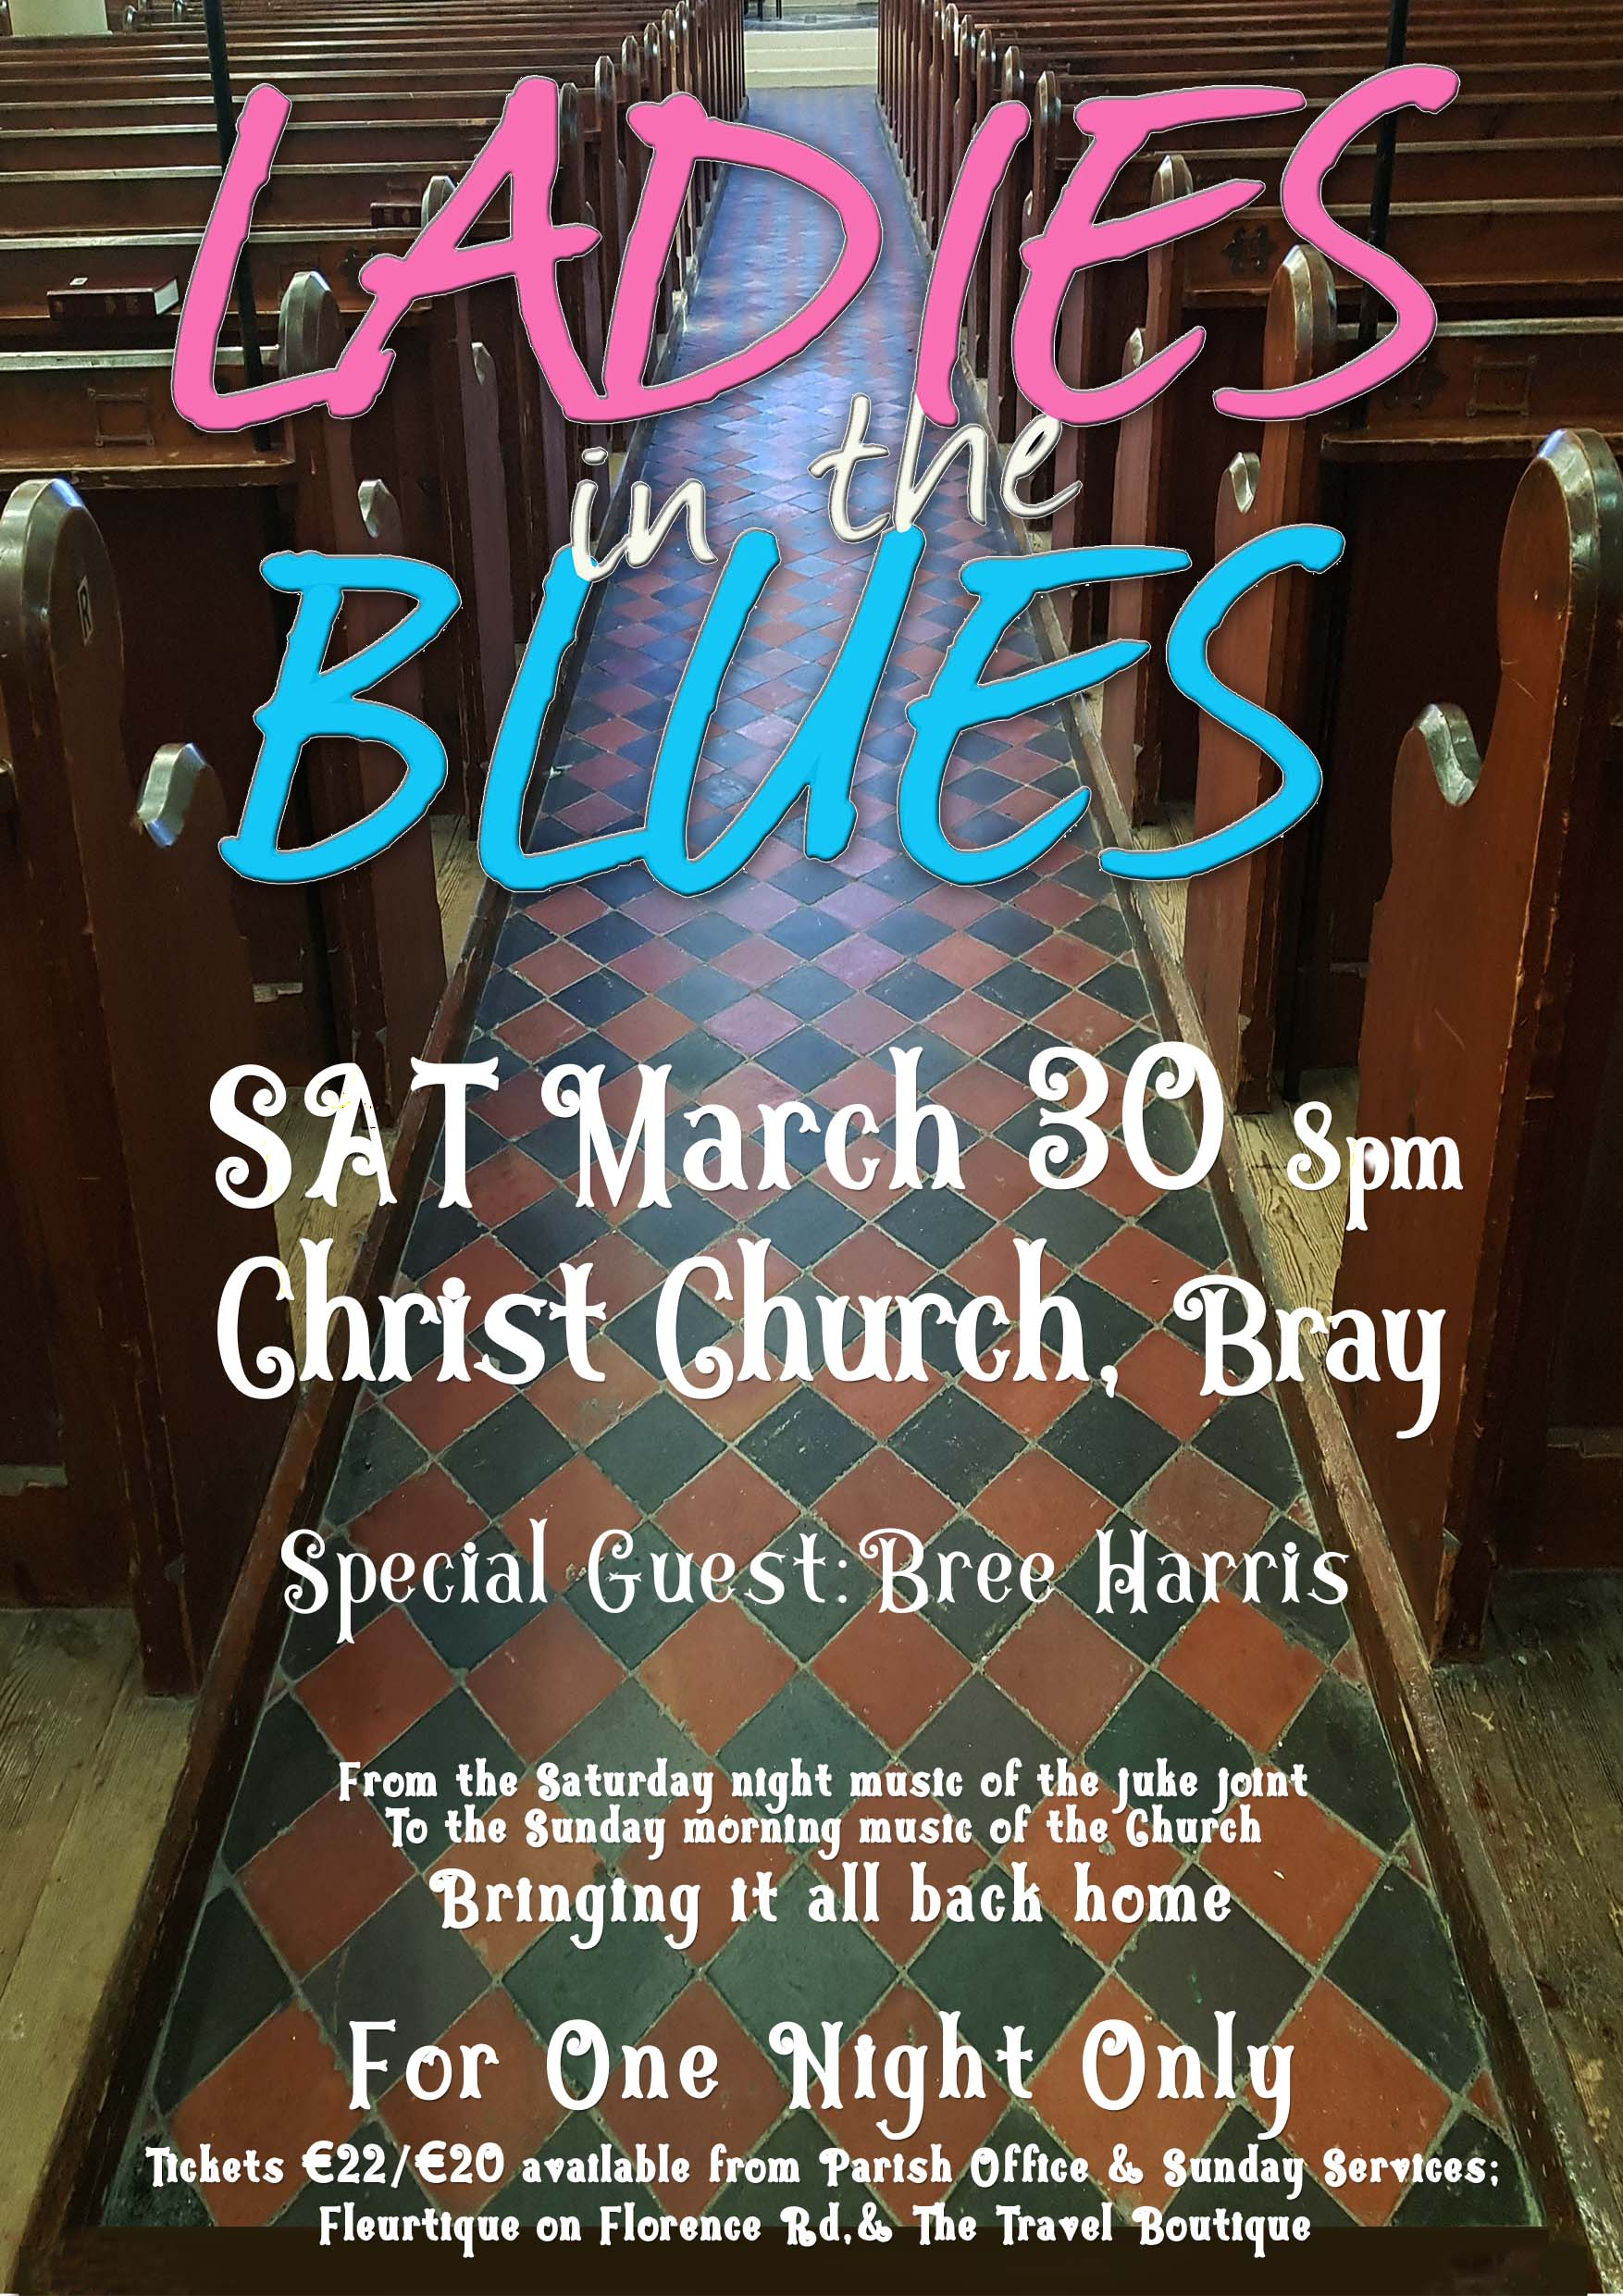 Ladies in the Blues - Christ Church Bray